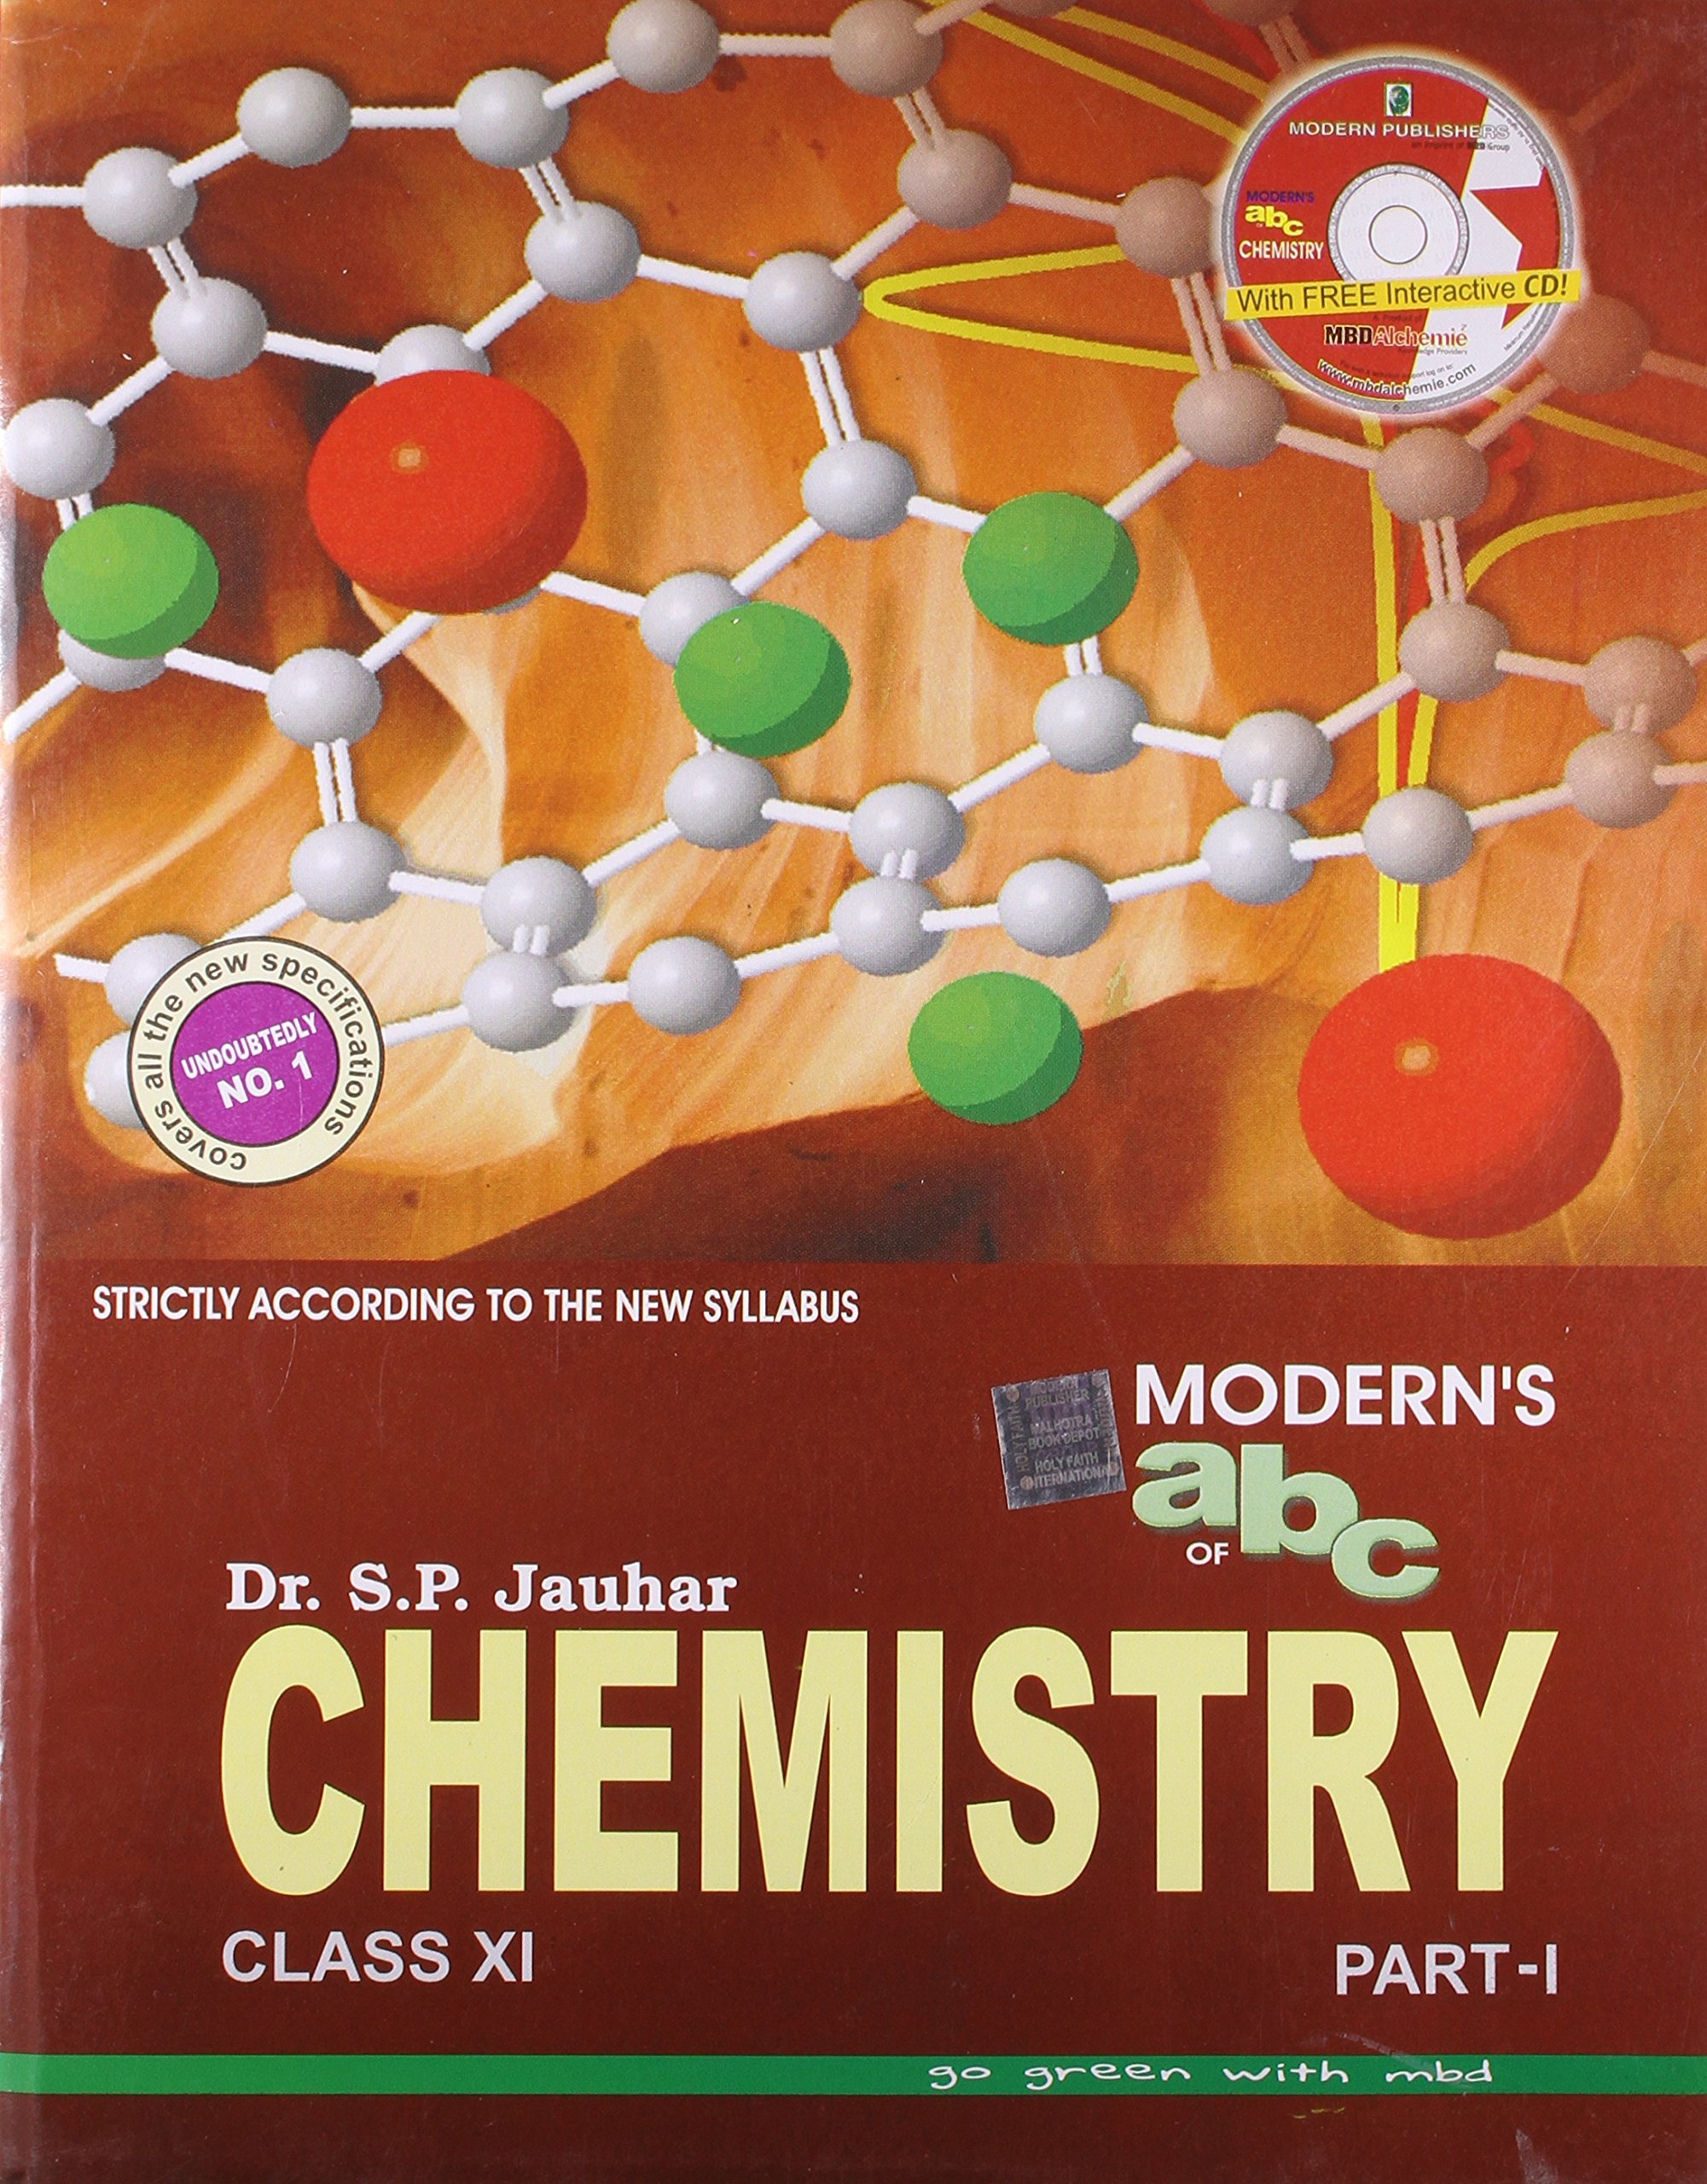 Moderns abc of chemistry for class xi set of 2 parts with cd